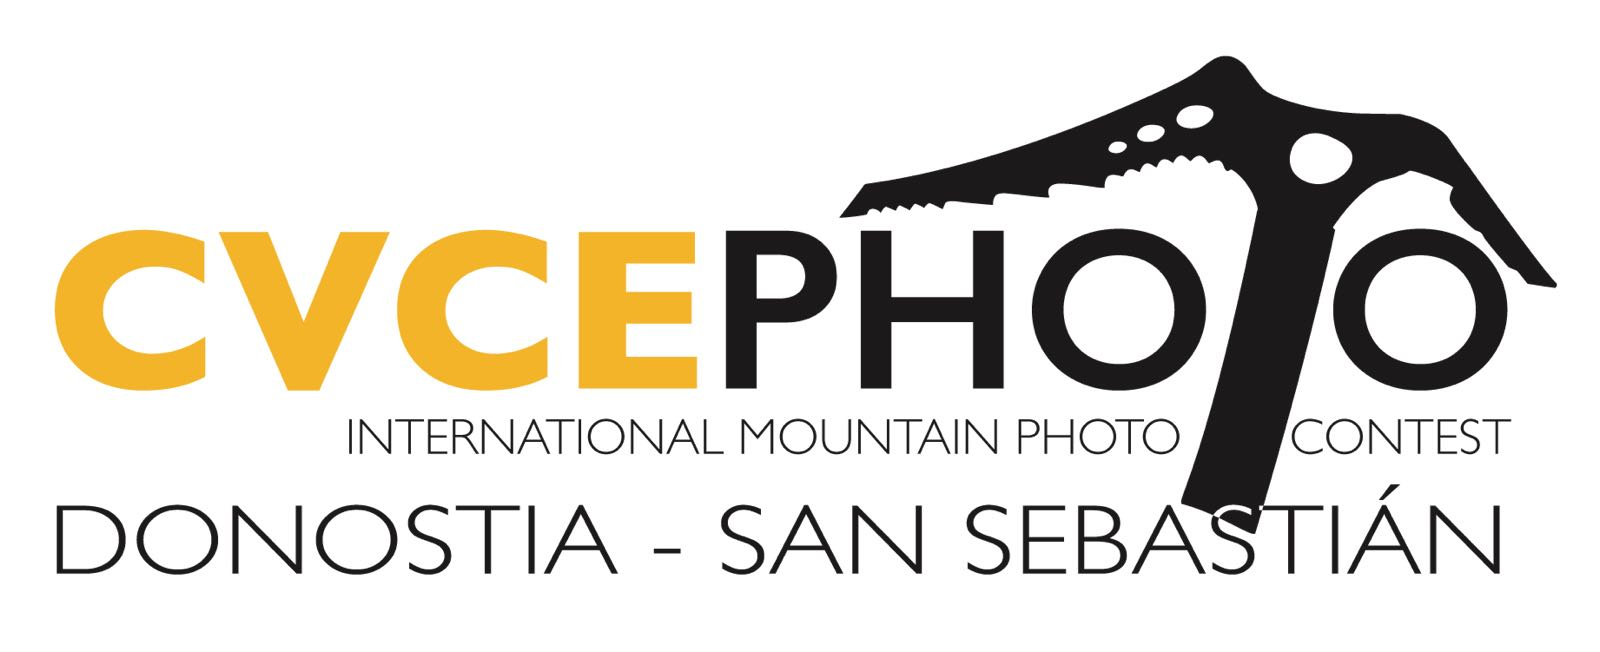 CVCEPHOTO 2019 – INTERNATIONAL PHOTOGRAPHY CONTEST OF MOUNTAIN ACTIVITY - logo